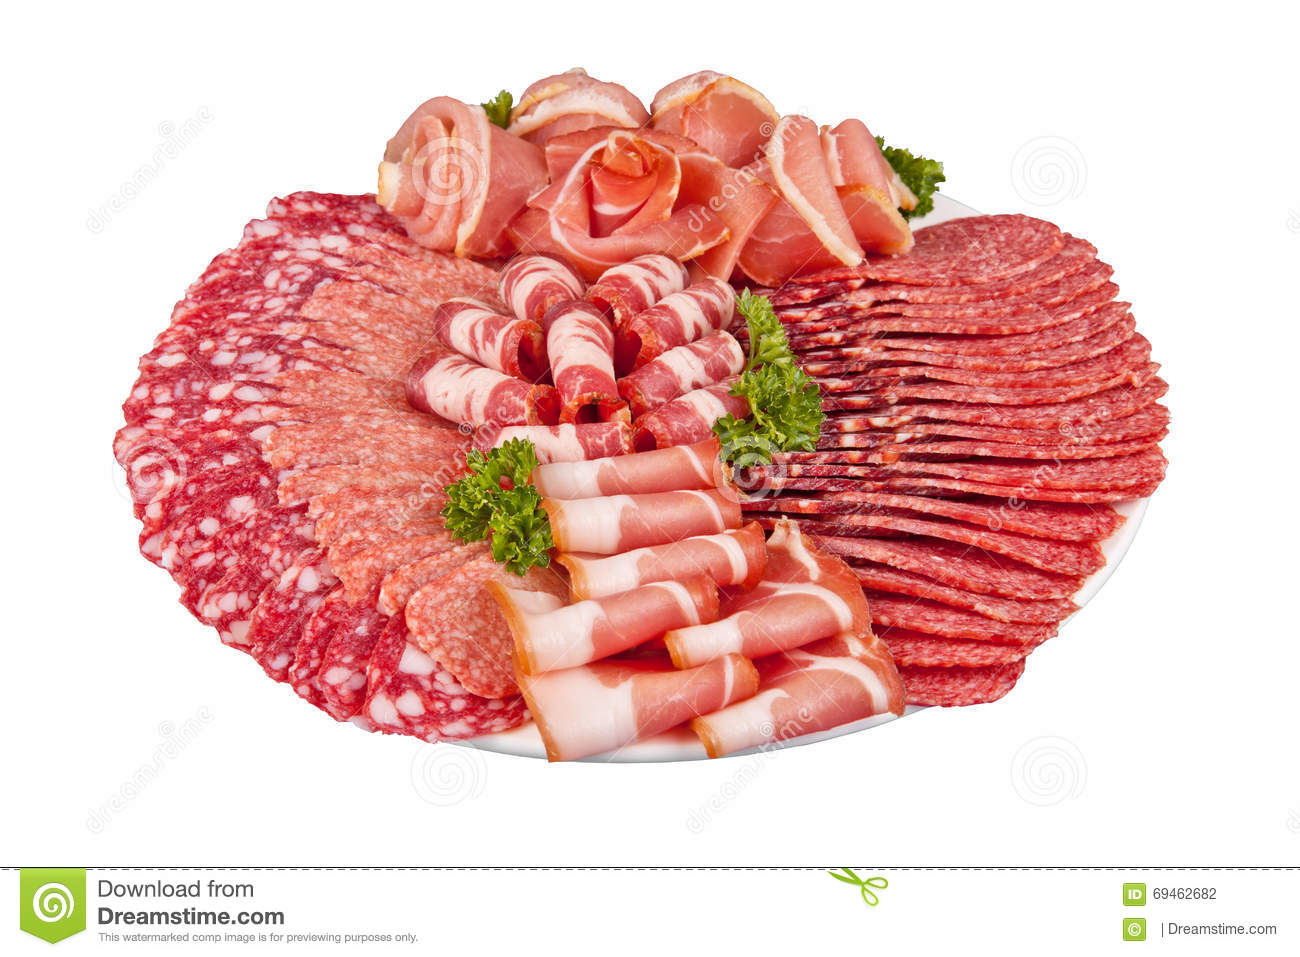 Salami ham meat and more on the plate